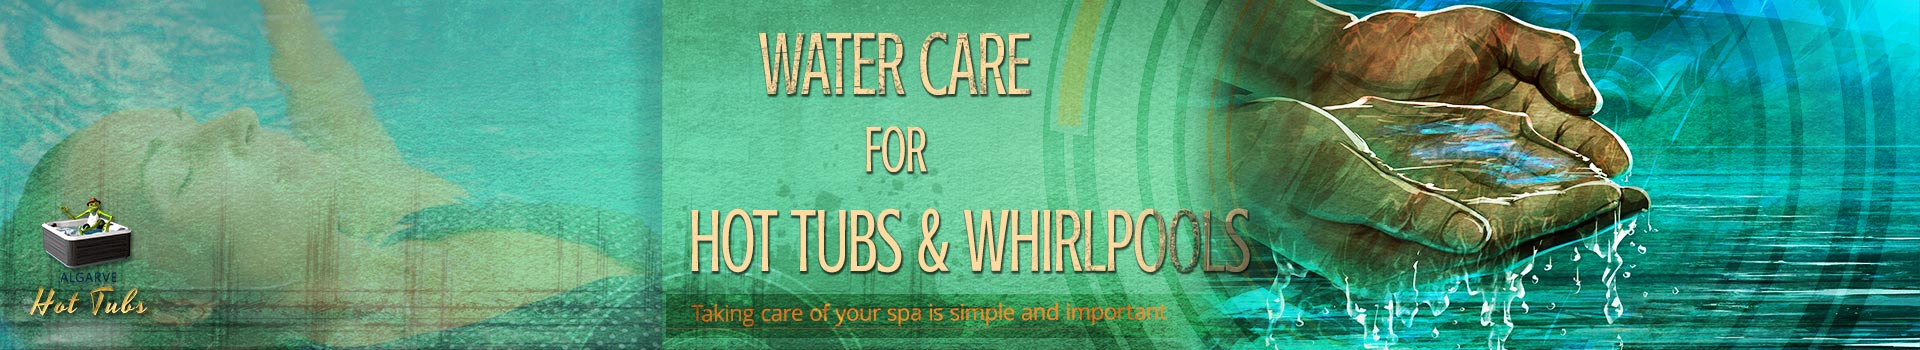 Hot Tubs Water Care - Wellness Dreams Algarve